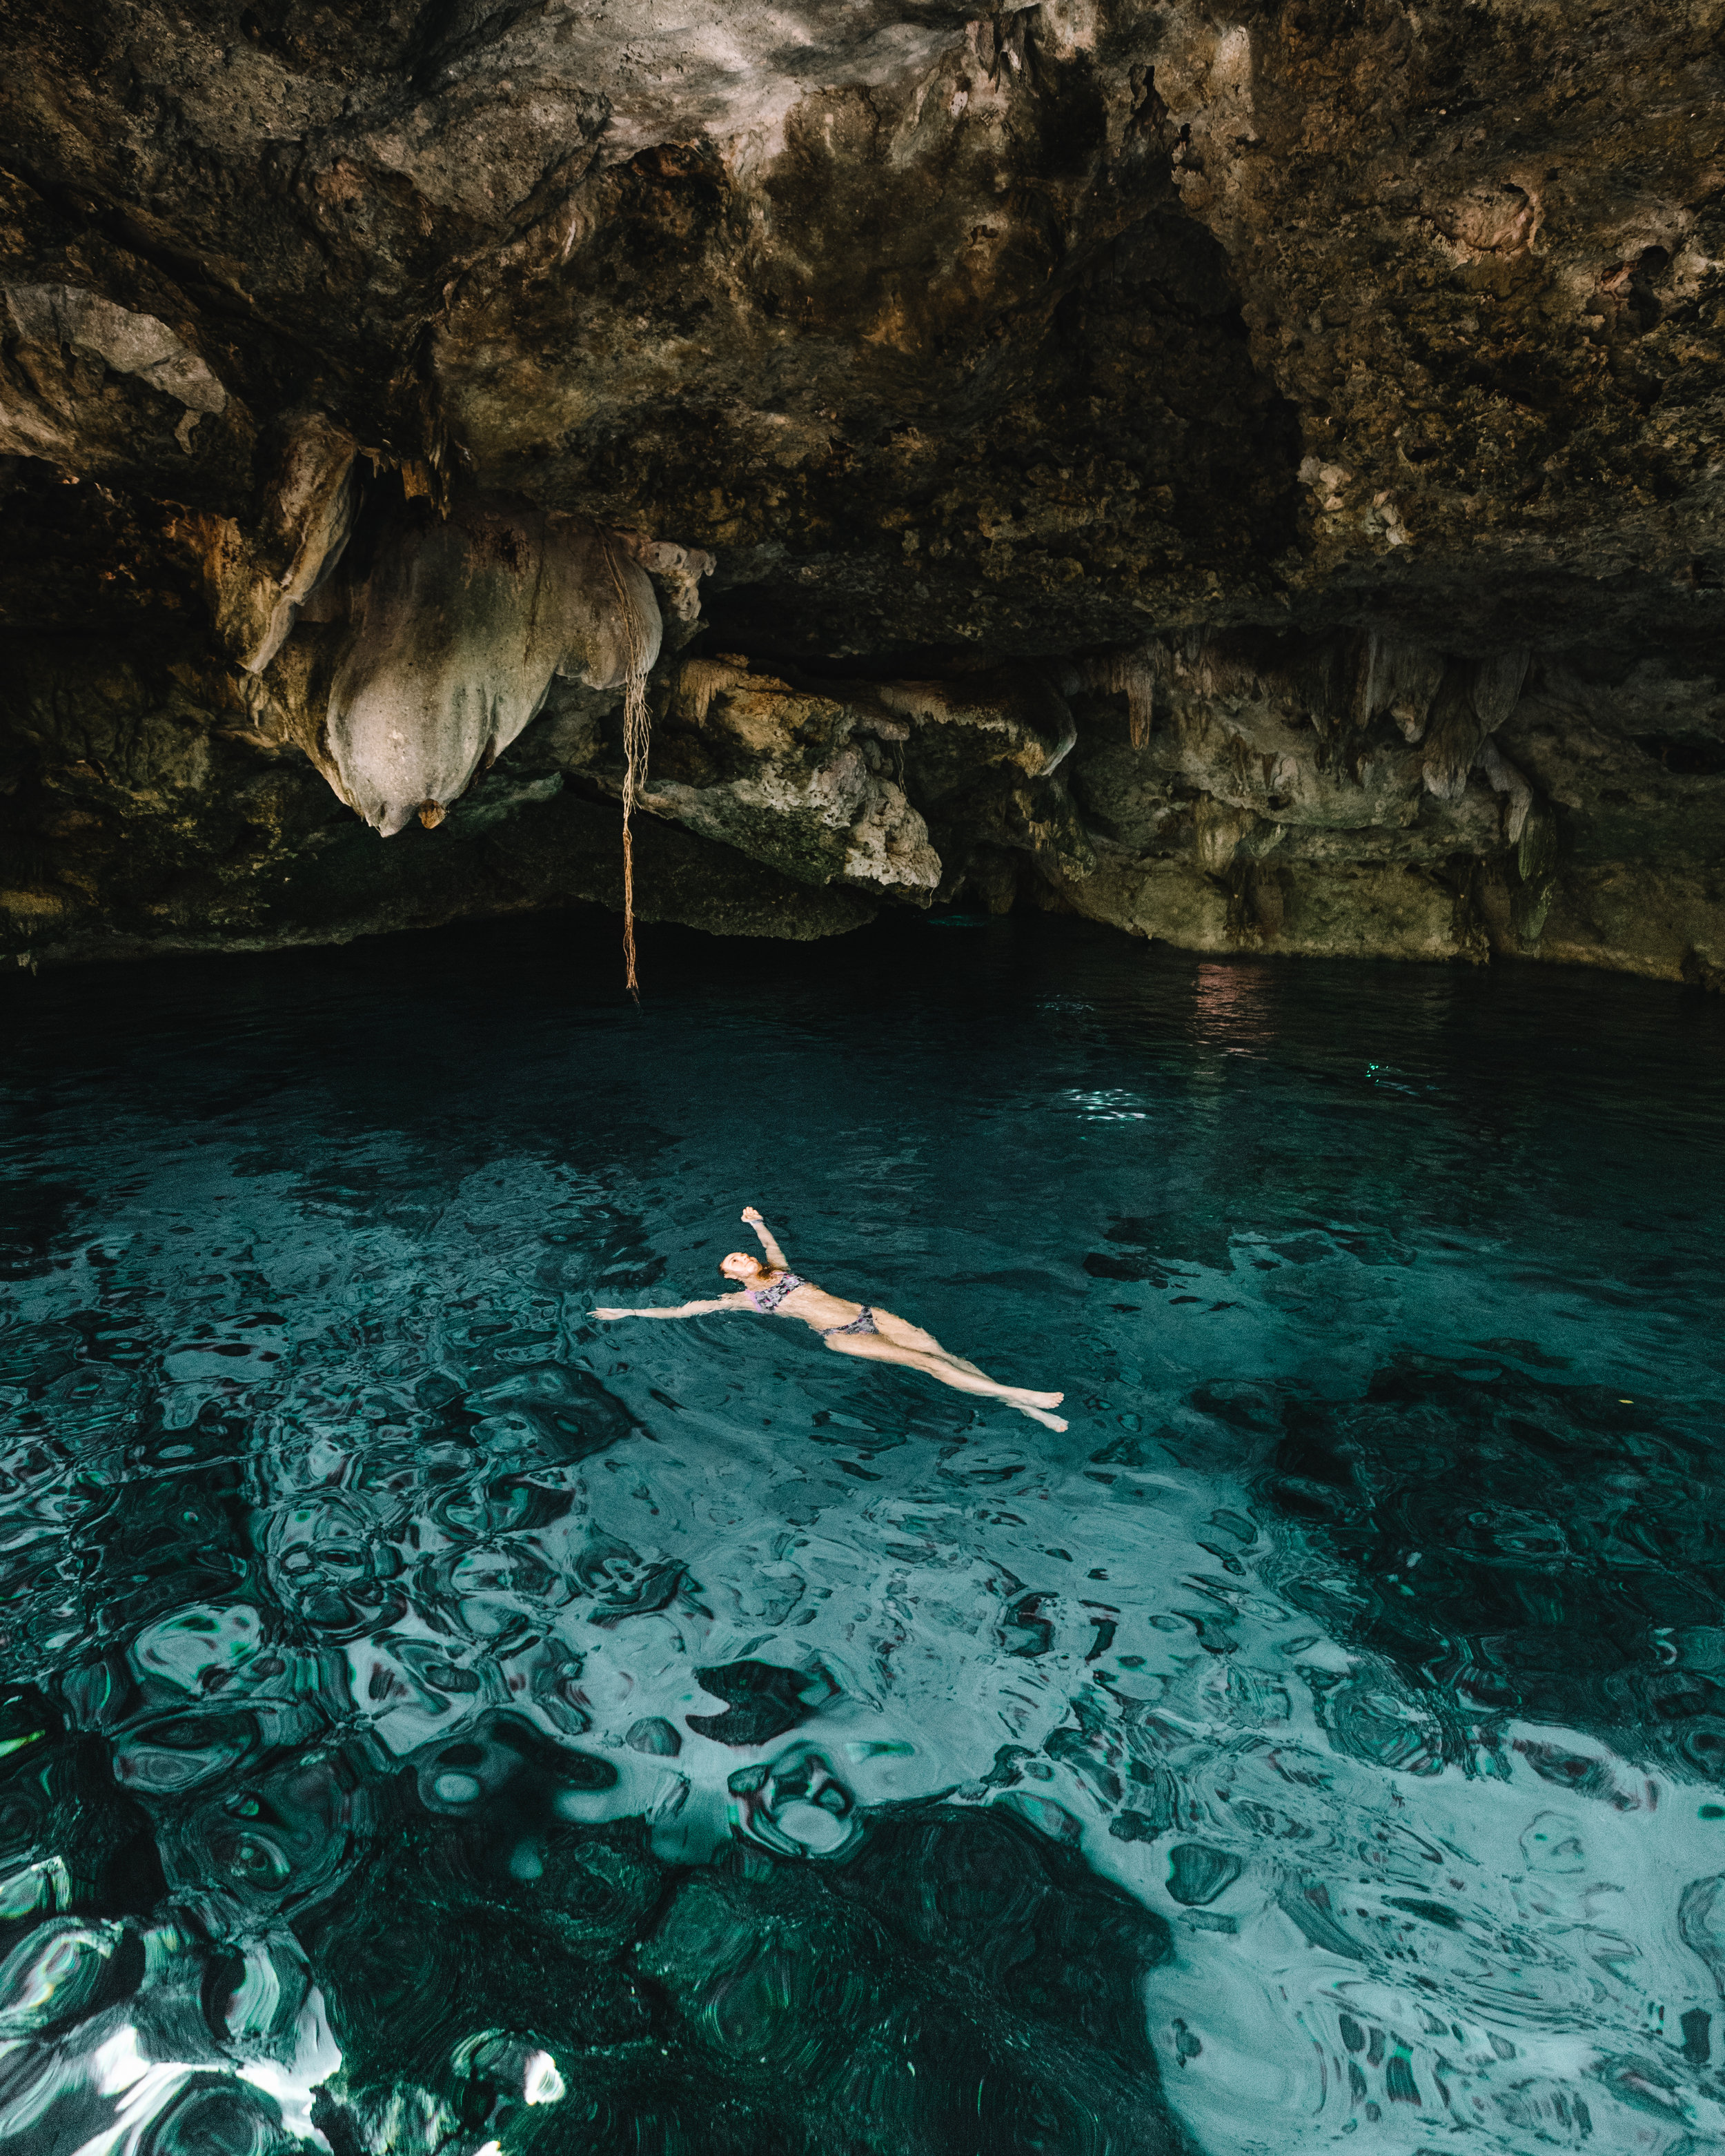 Excursions include a private cenote tour and an empowering temezcal ceremony